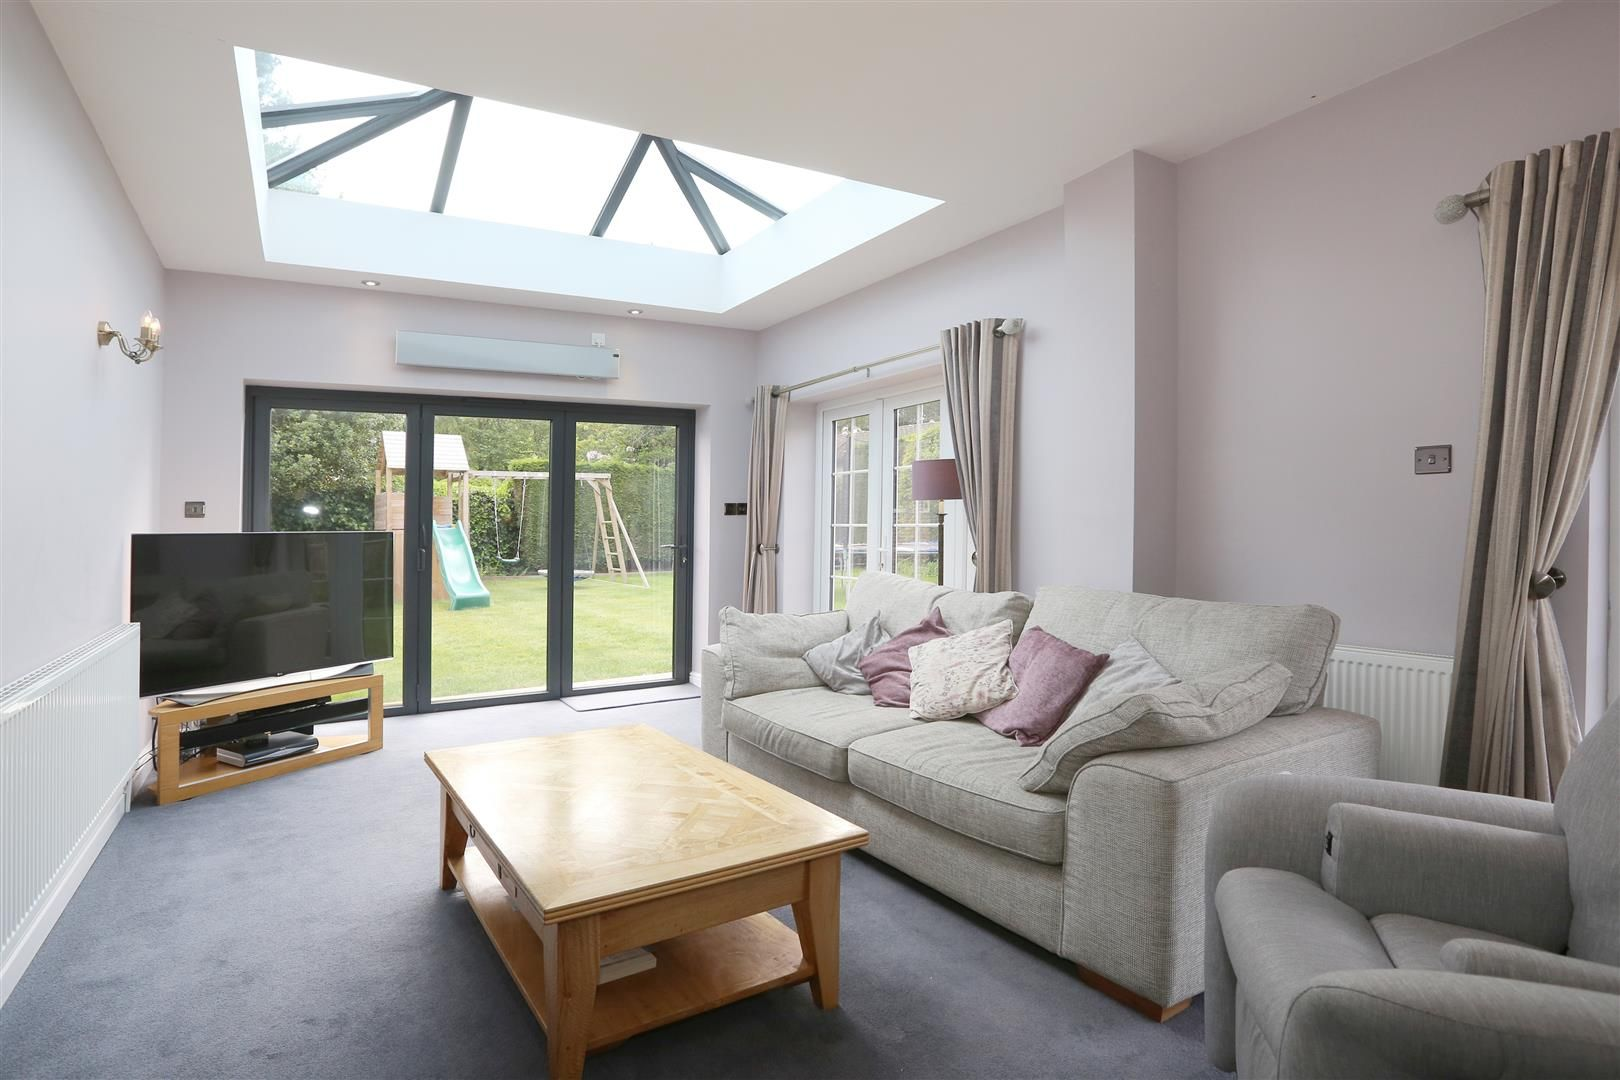 4 bed house for sale in Churchill 3